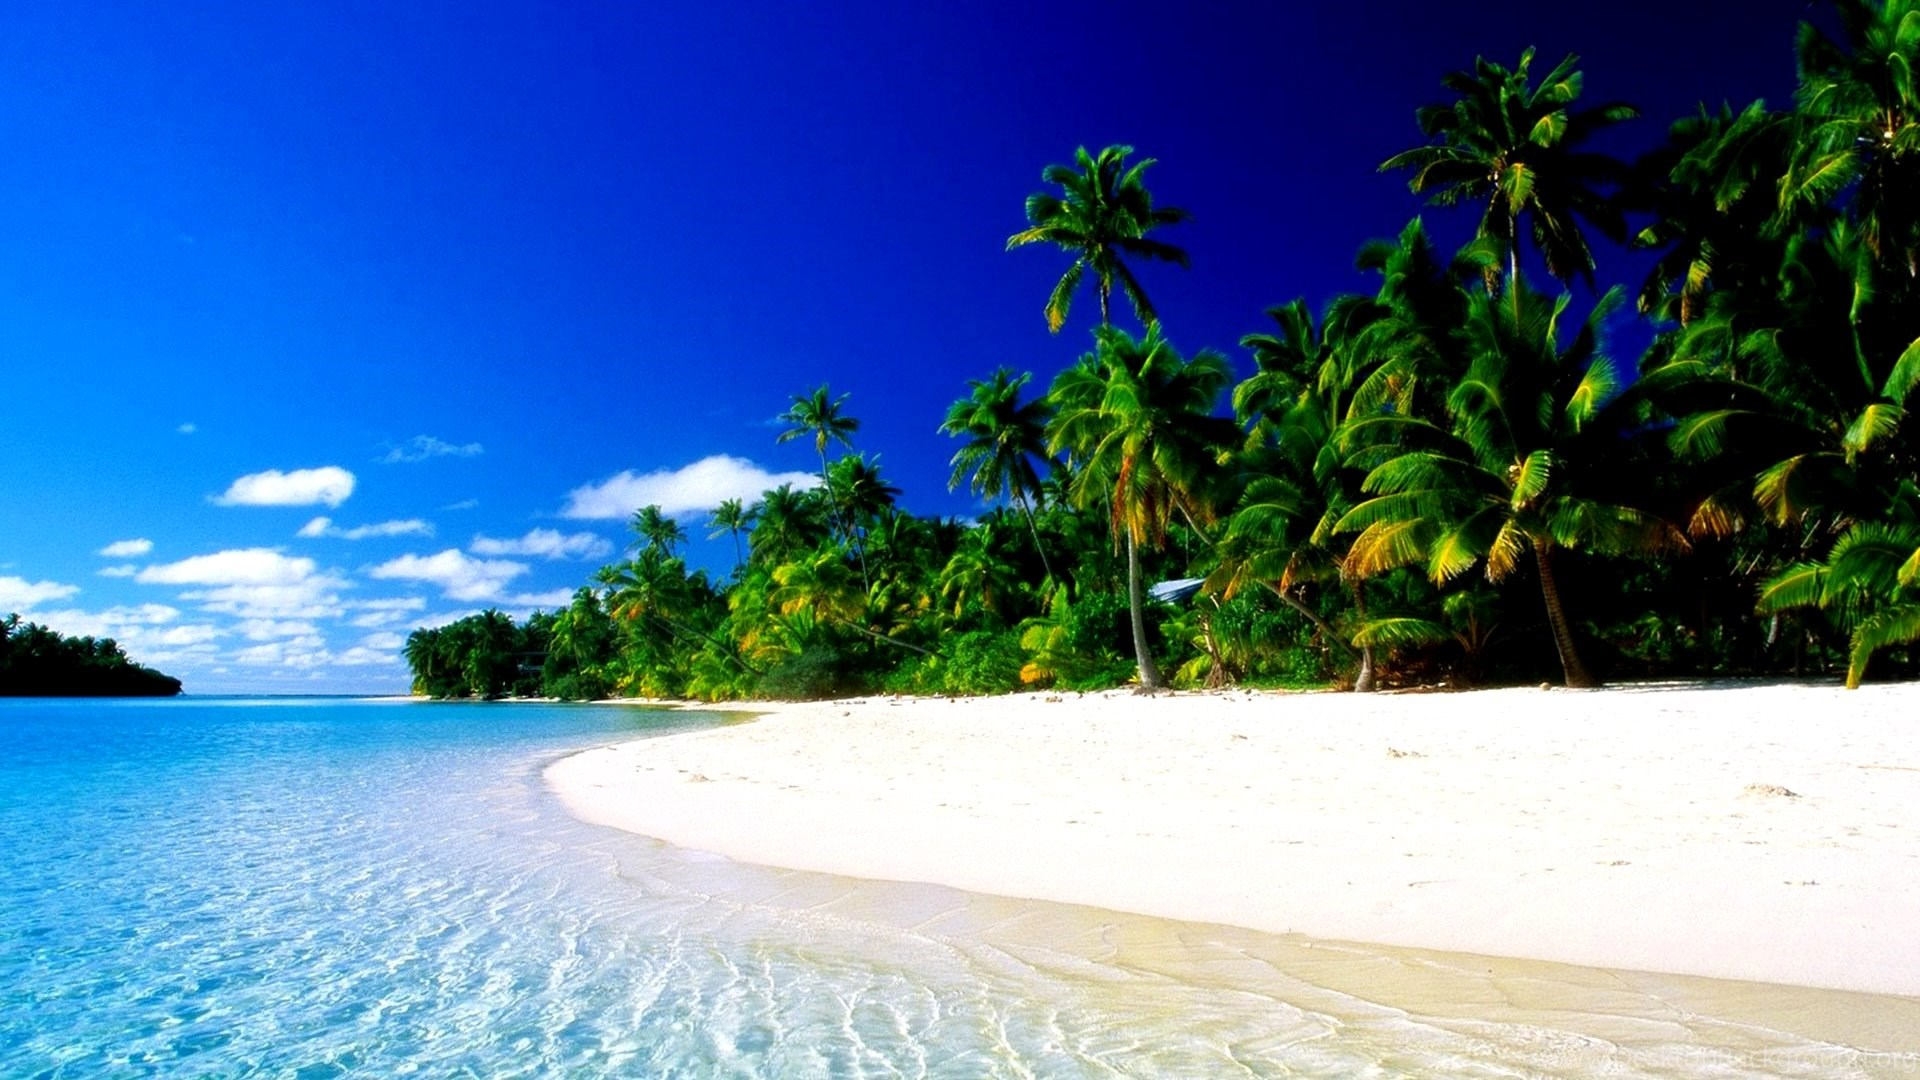 Tropical Paradise Wallpapers Desktop Background